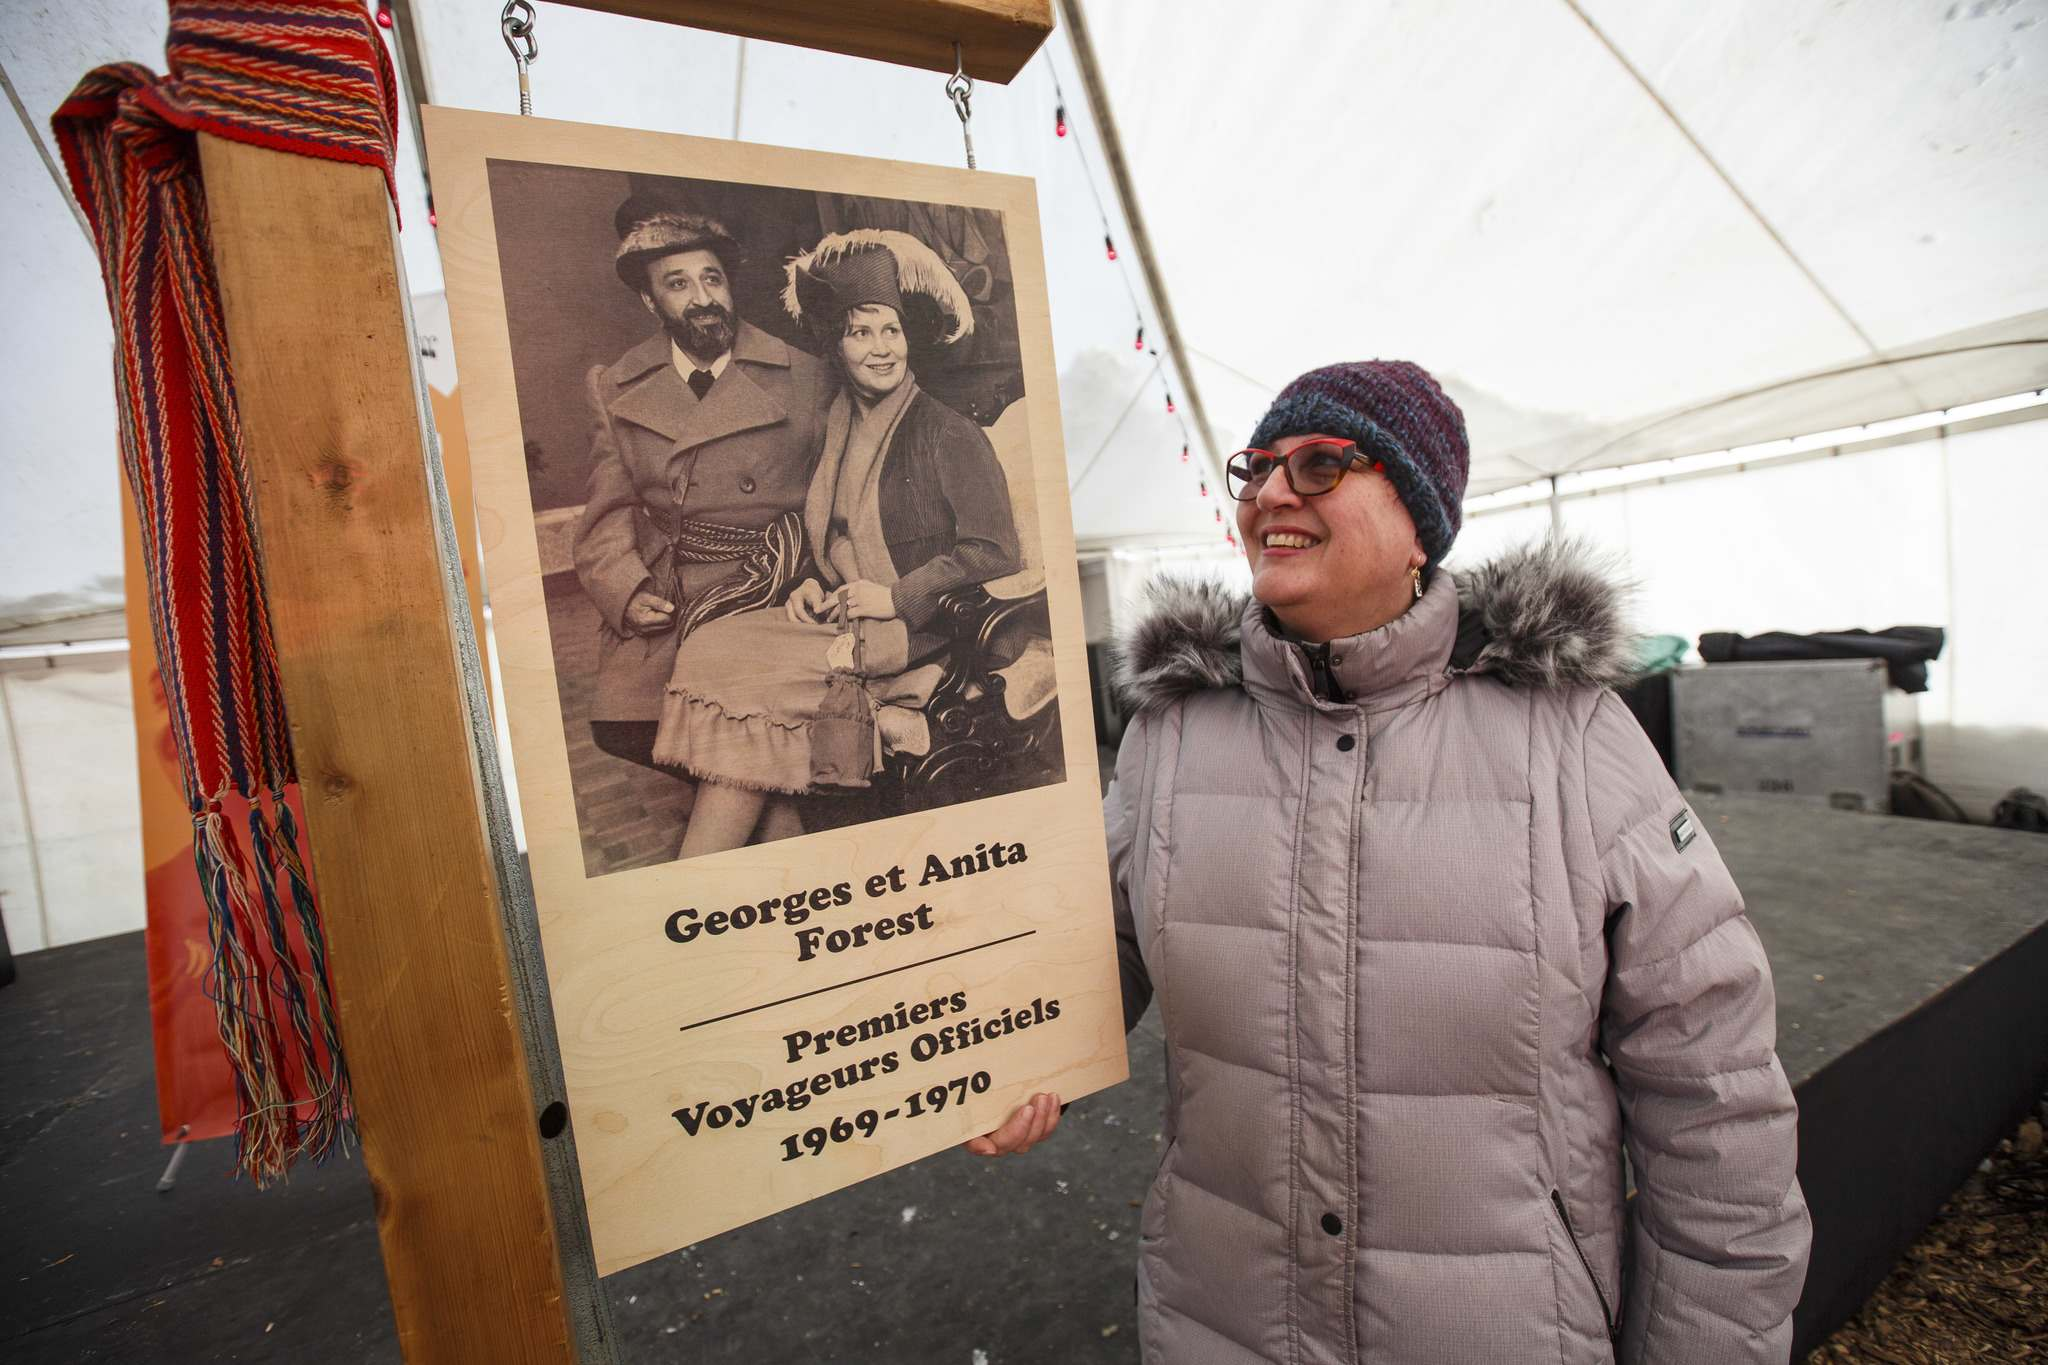 The Festival du Voyageur celebrated Georges Forest and his wife Anita this year. Their daughter Lise Forest (above) was on hand at the opening ceremony to honour the Festival co-founders. (Mike Deal / Winnipeg Free Press)</p>